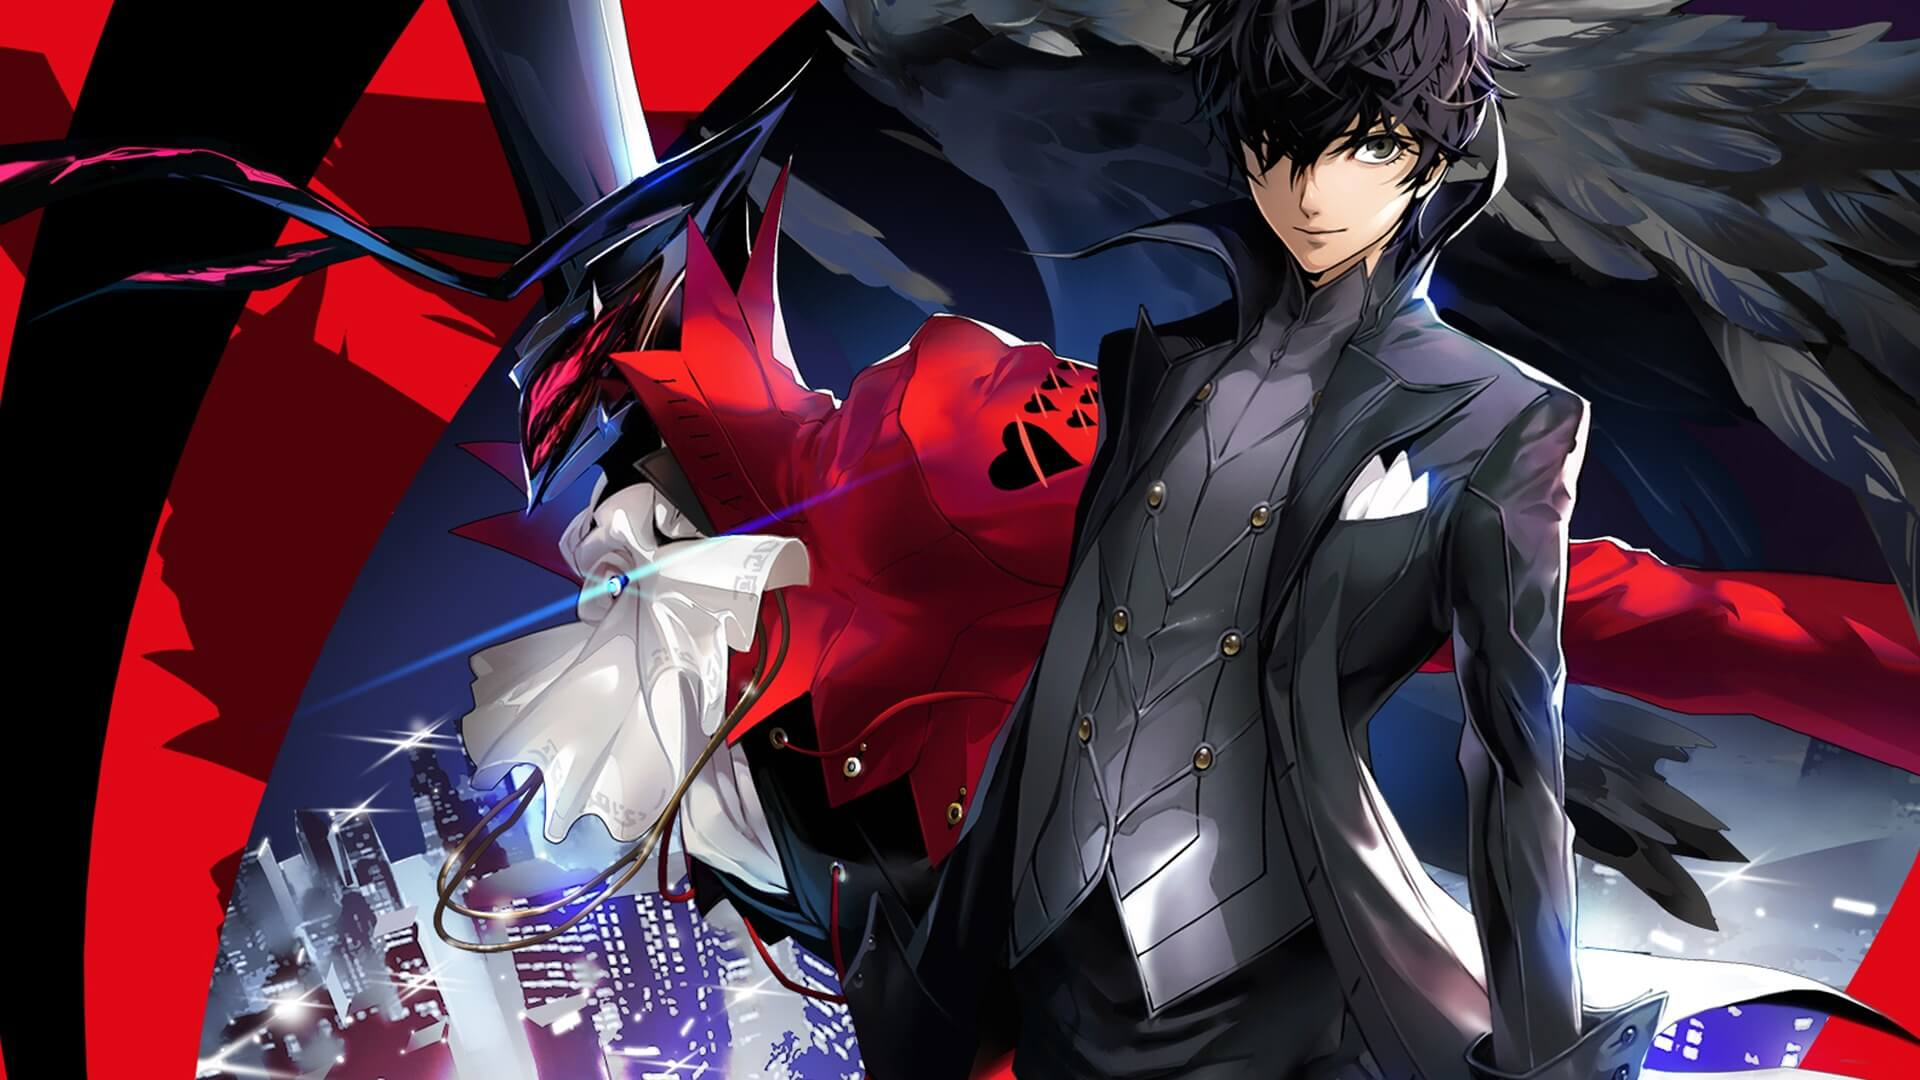 Persona 5 Royal Wallpaper Posted By Ethan Simpson